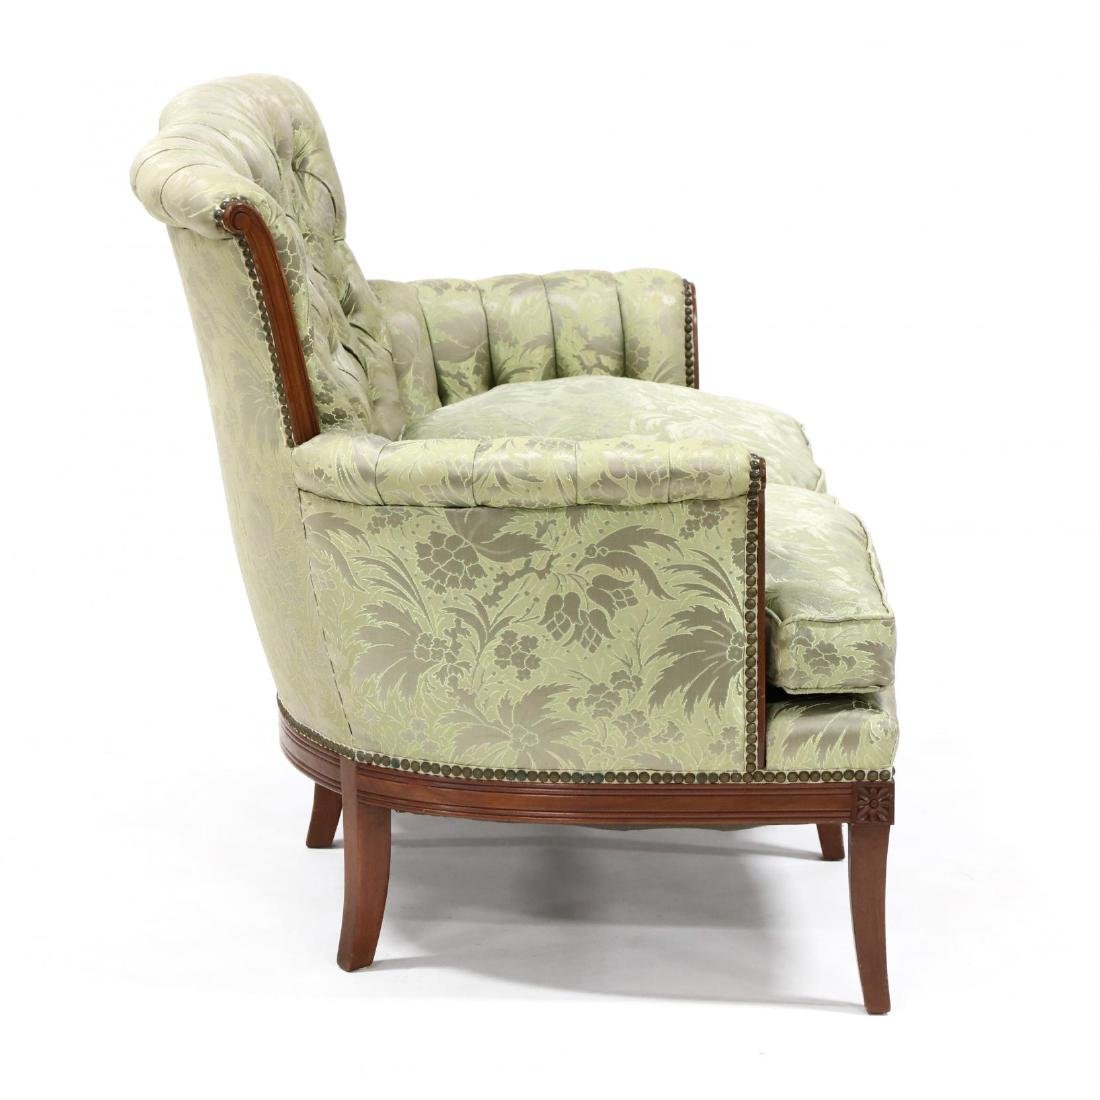 Brandt, French Provincial Style Settee - 4